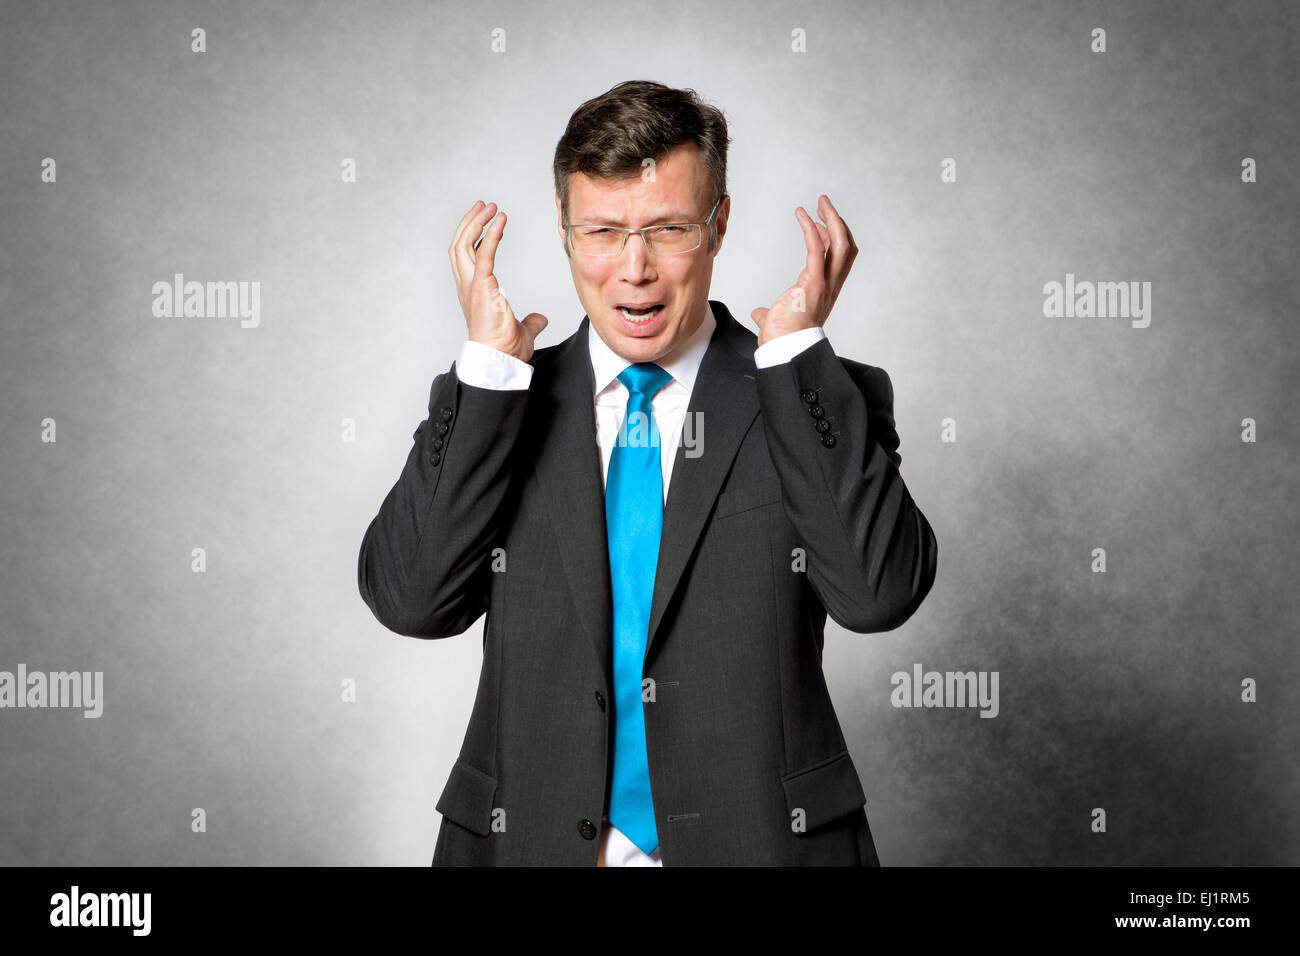 Image of frustrated business man in dark suit - Stock Image